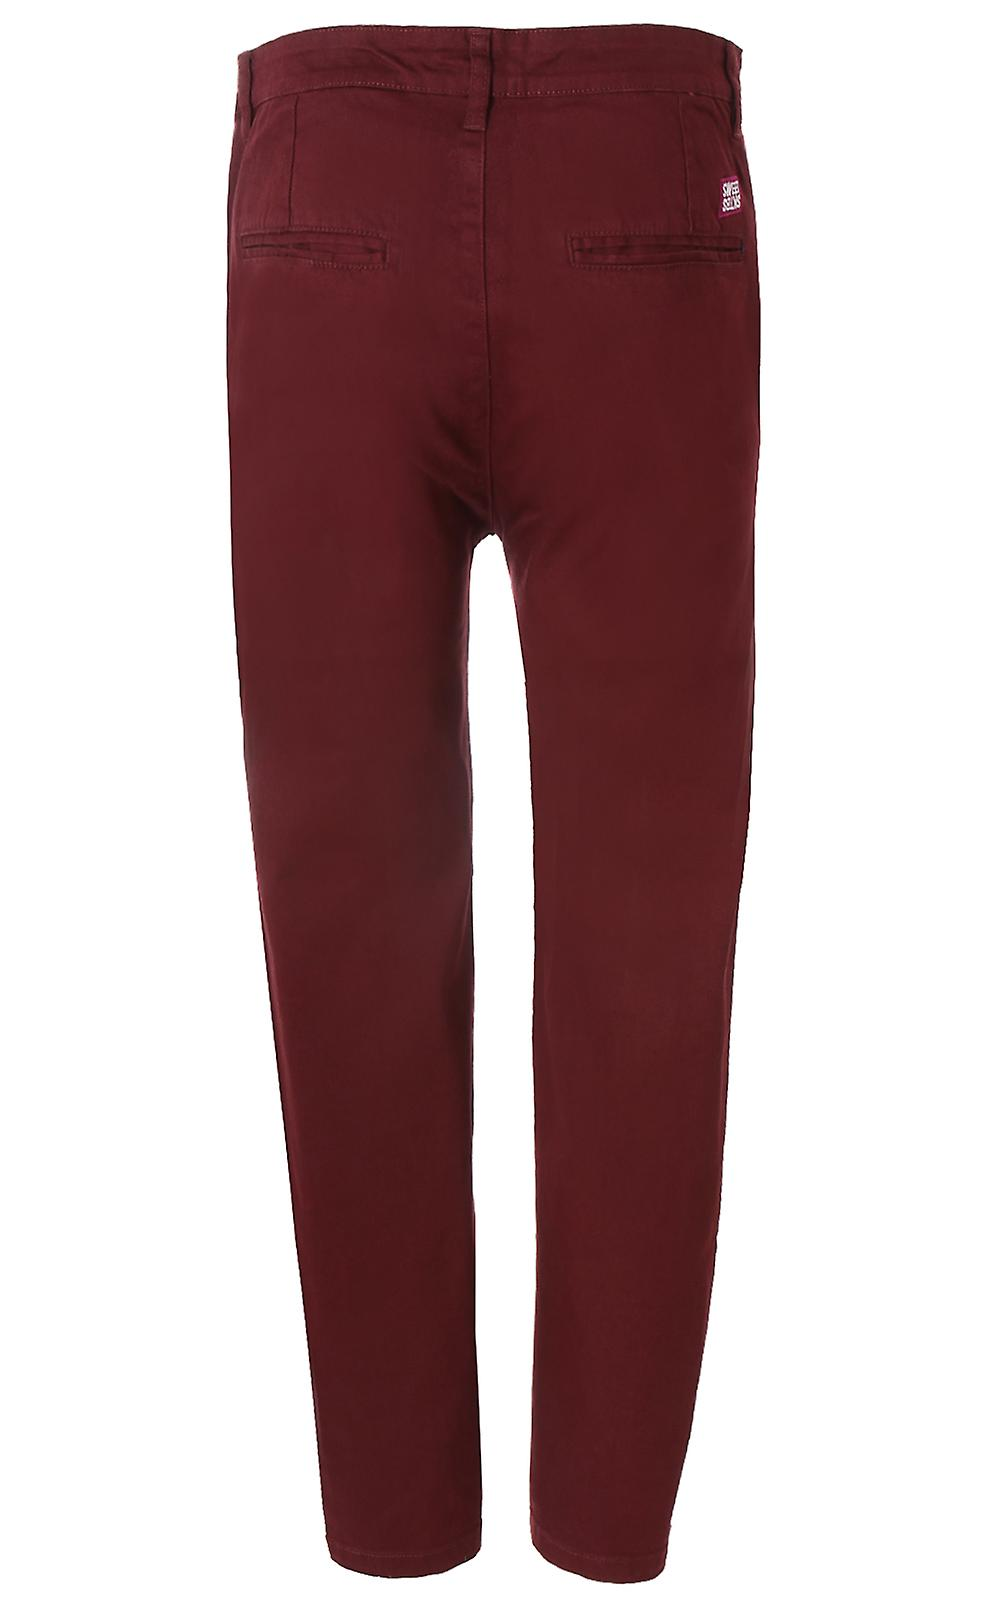 sweet sktbs chino hose herren jeans rot the chinos. Black Bedroom Furniture Sets. Home Design Ideas